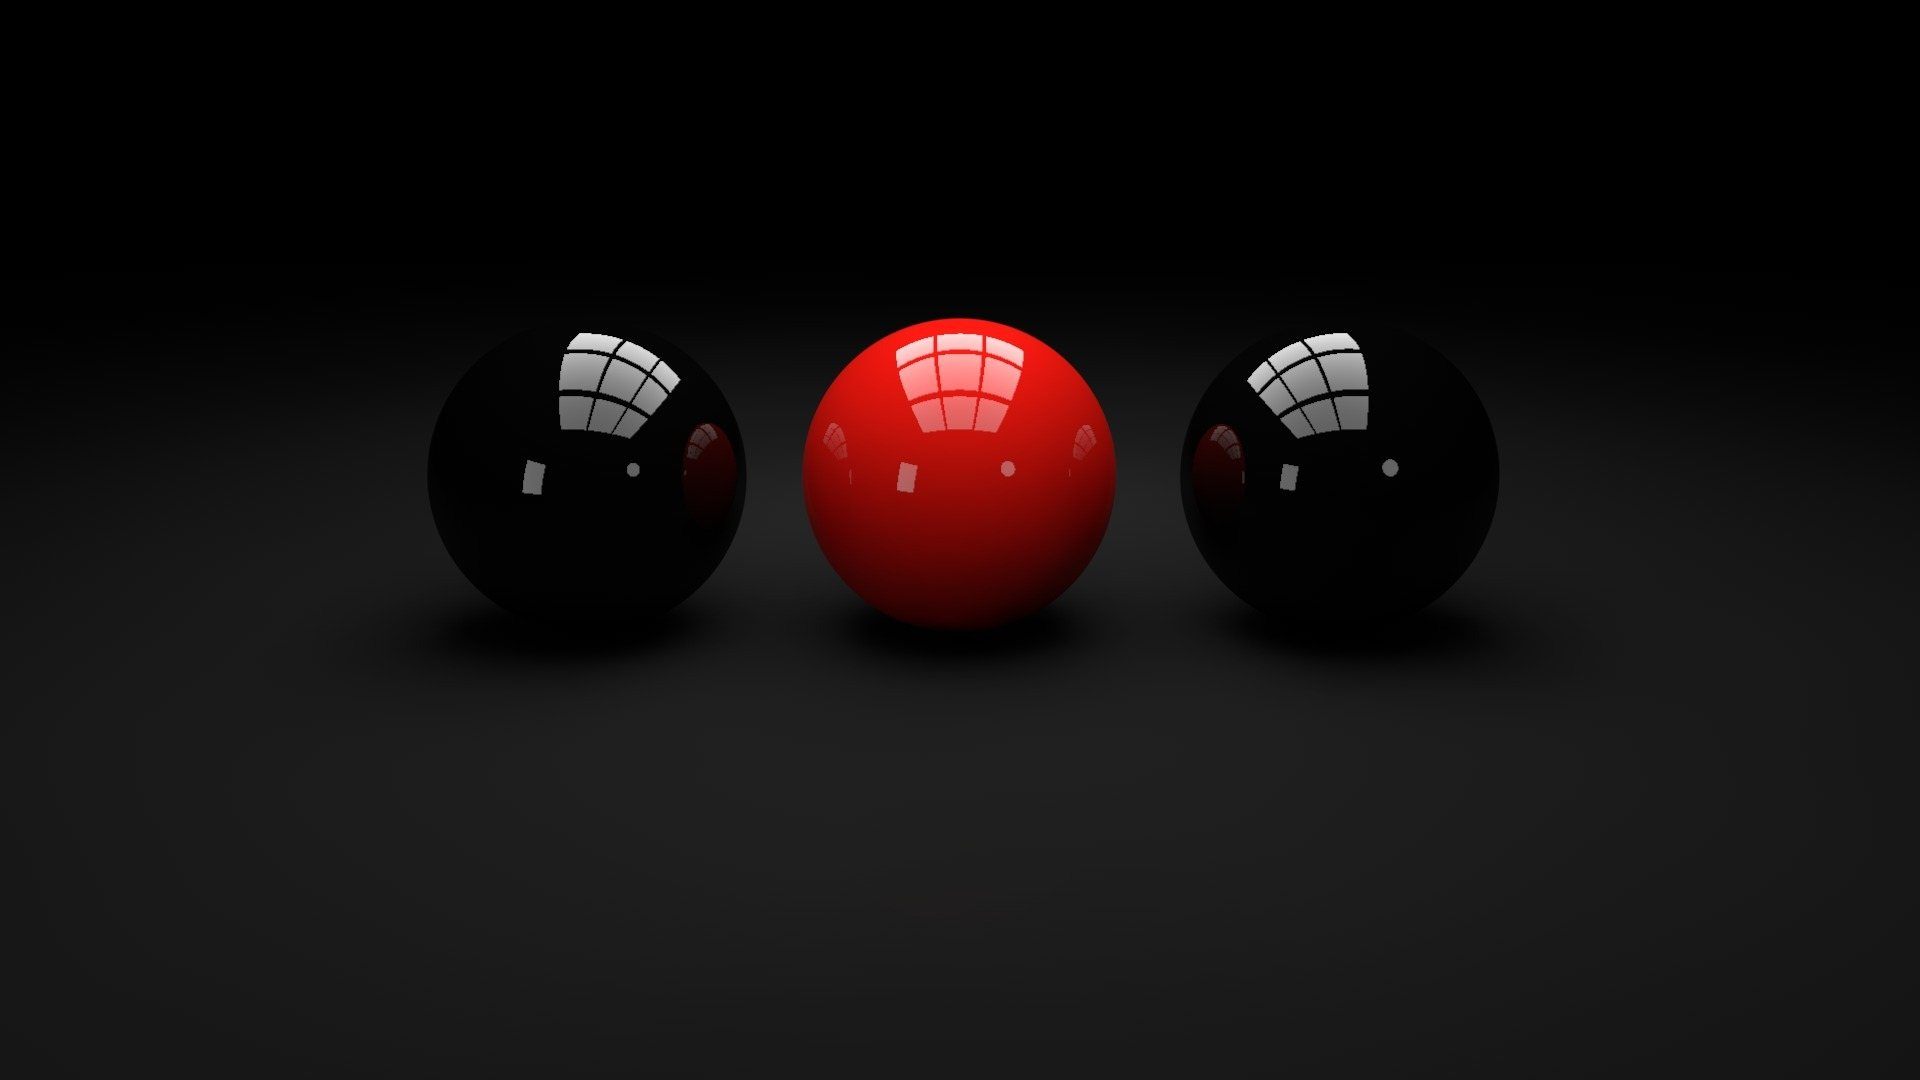 Hd Wallpapers 13 Awesome Black And Red Wallpapers Hd The Nology